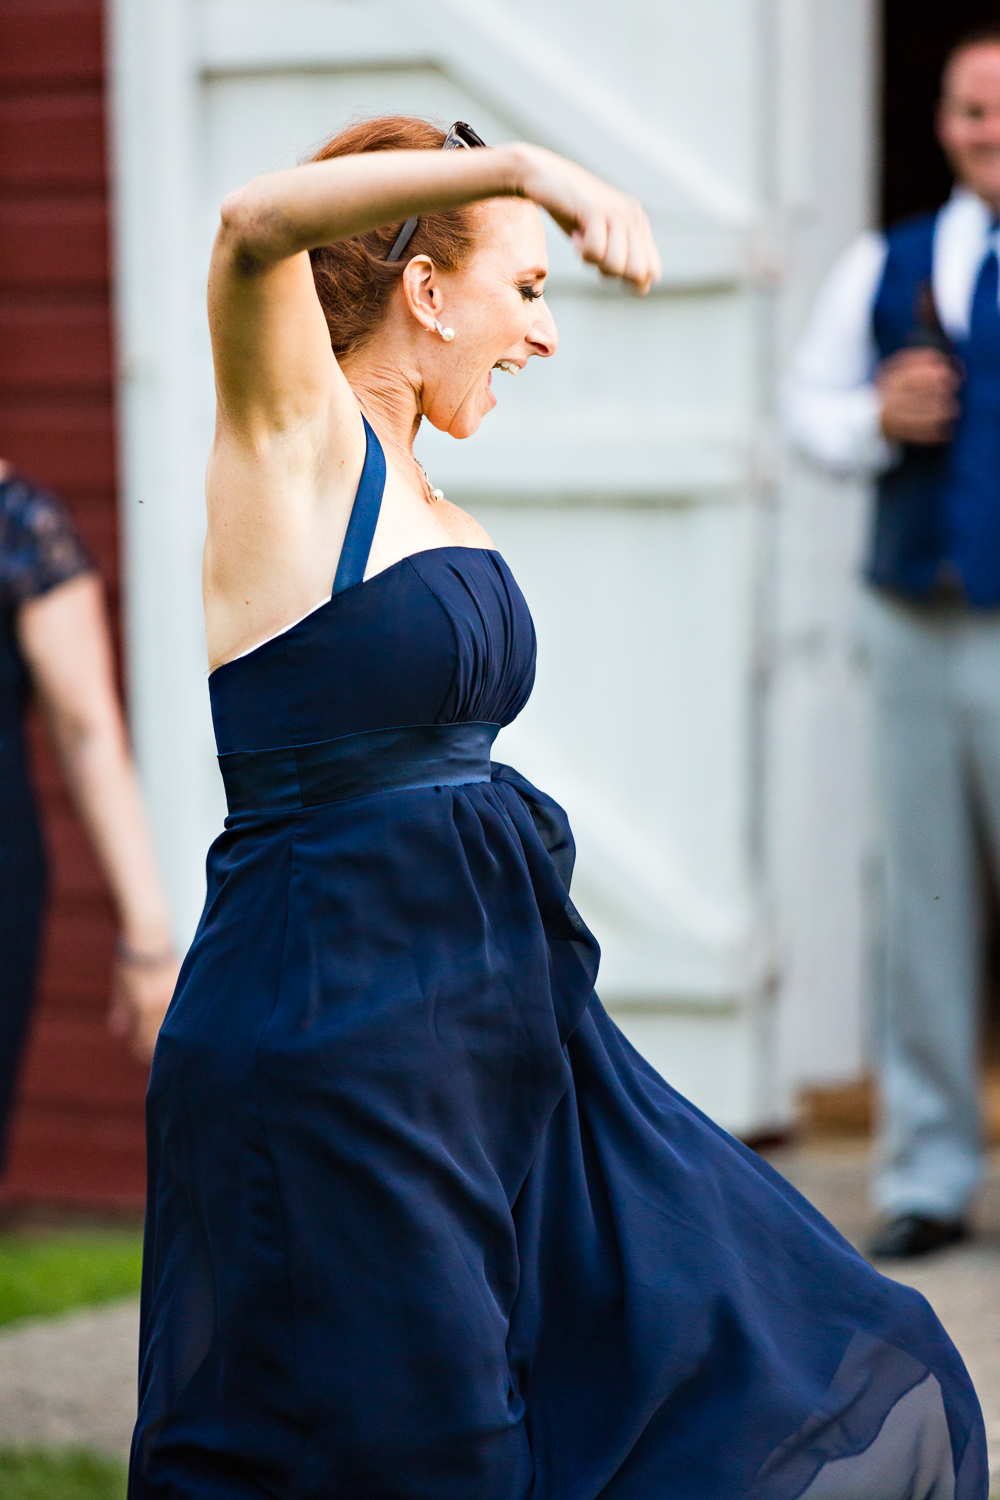 bozeman-montana-wedding-roys-barn-bridesmaid-dancing.jpg